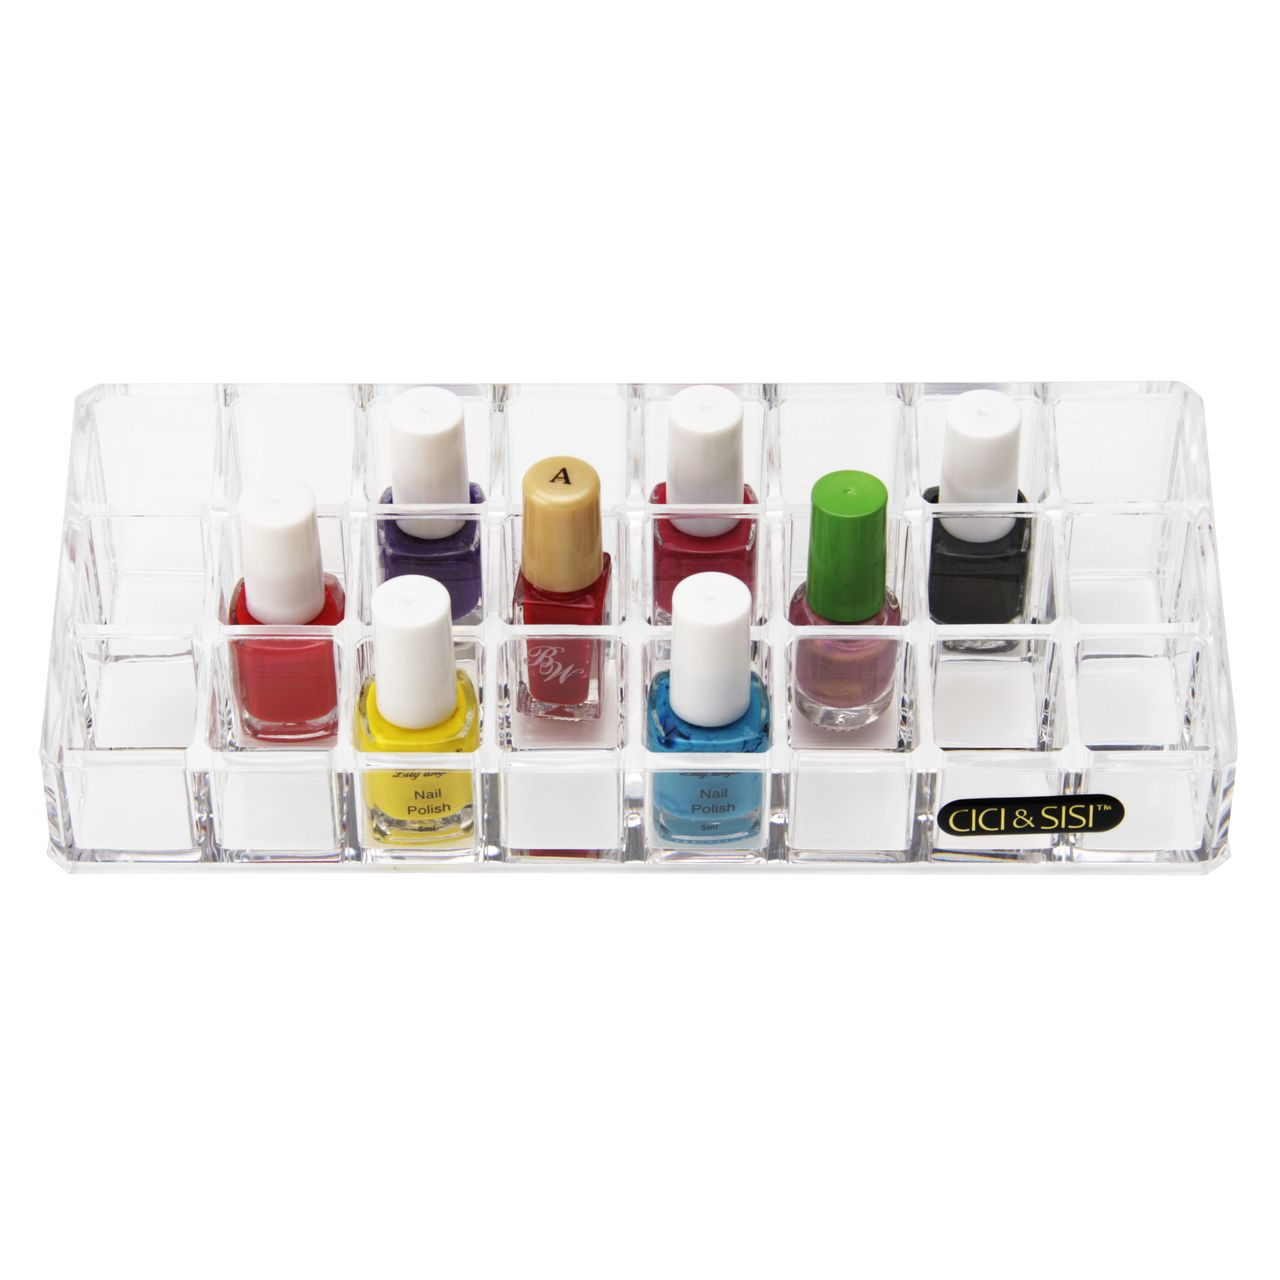 Clear Acrylic Lipstick Holder With 24pcs Spaces In Stock · $12.99